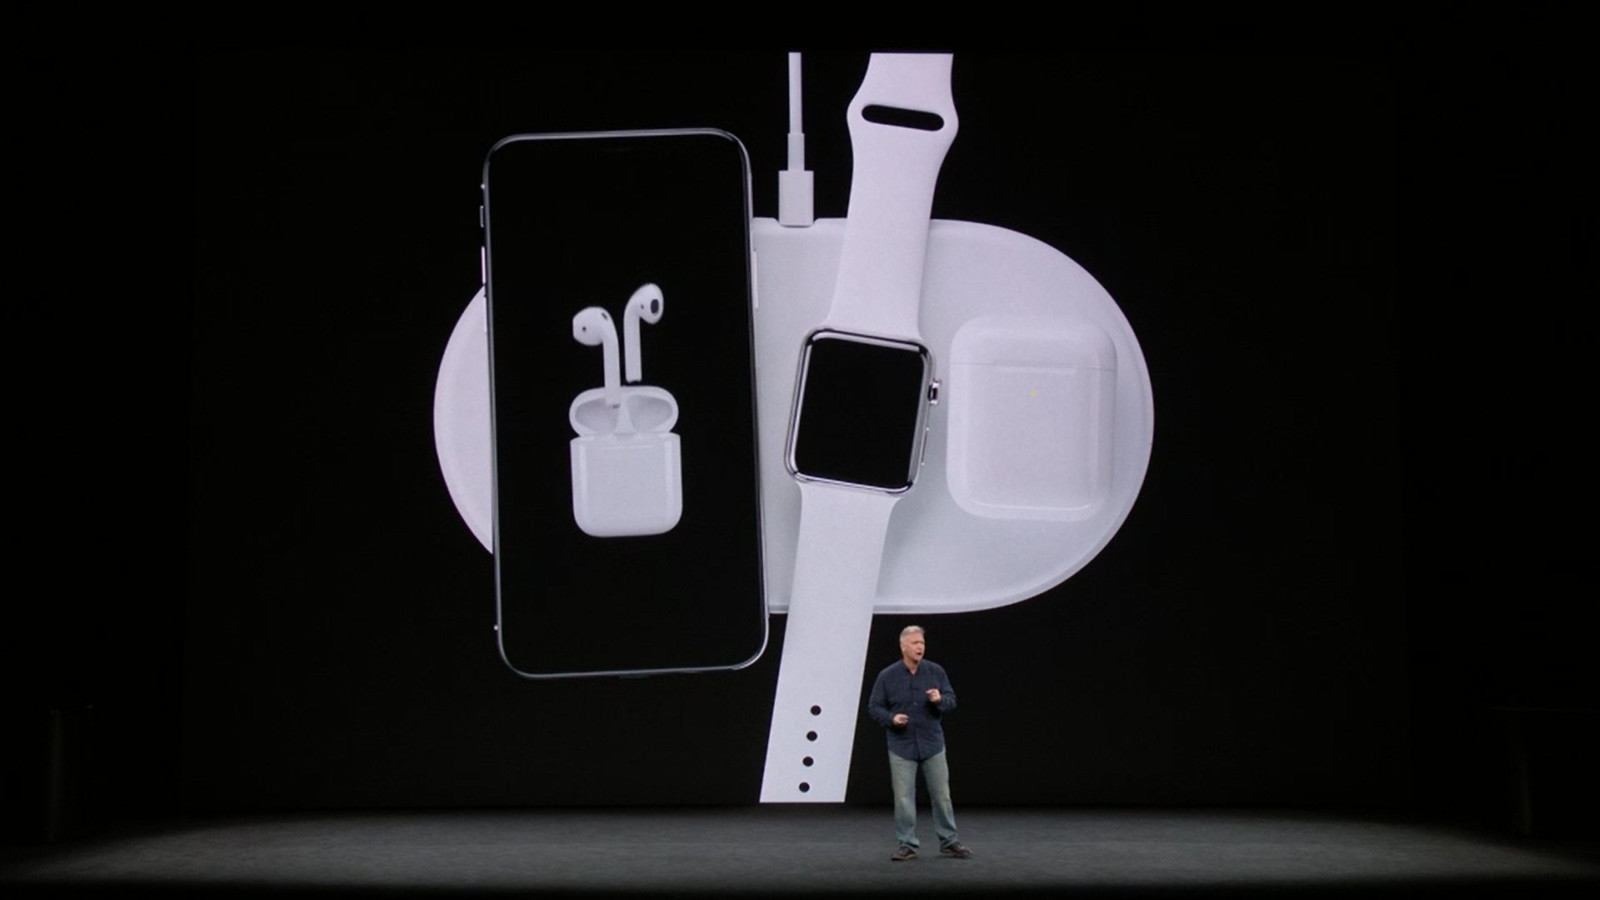 Apple's AirPower Wireless Charging Mat May Not Arrive Until September